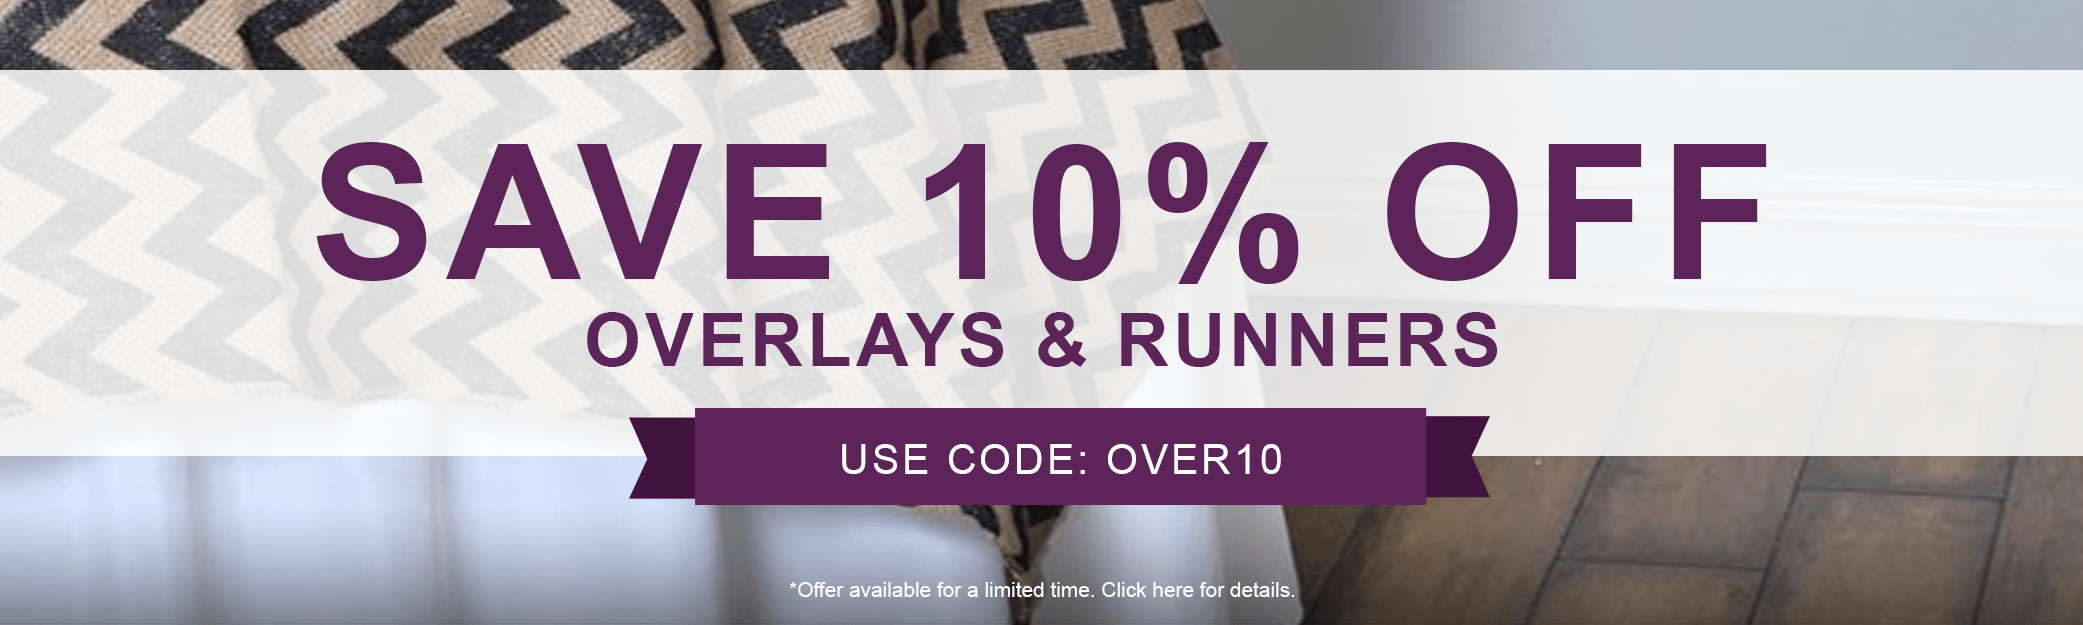 10% off Overlays & Runners